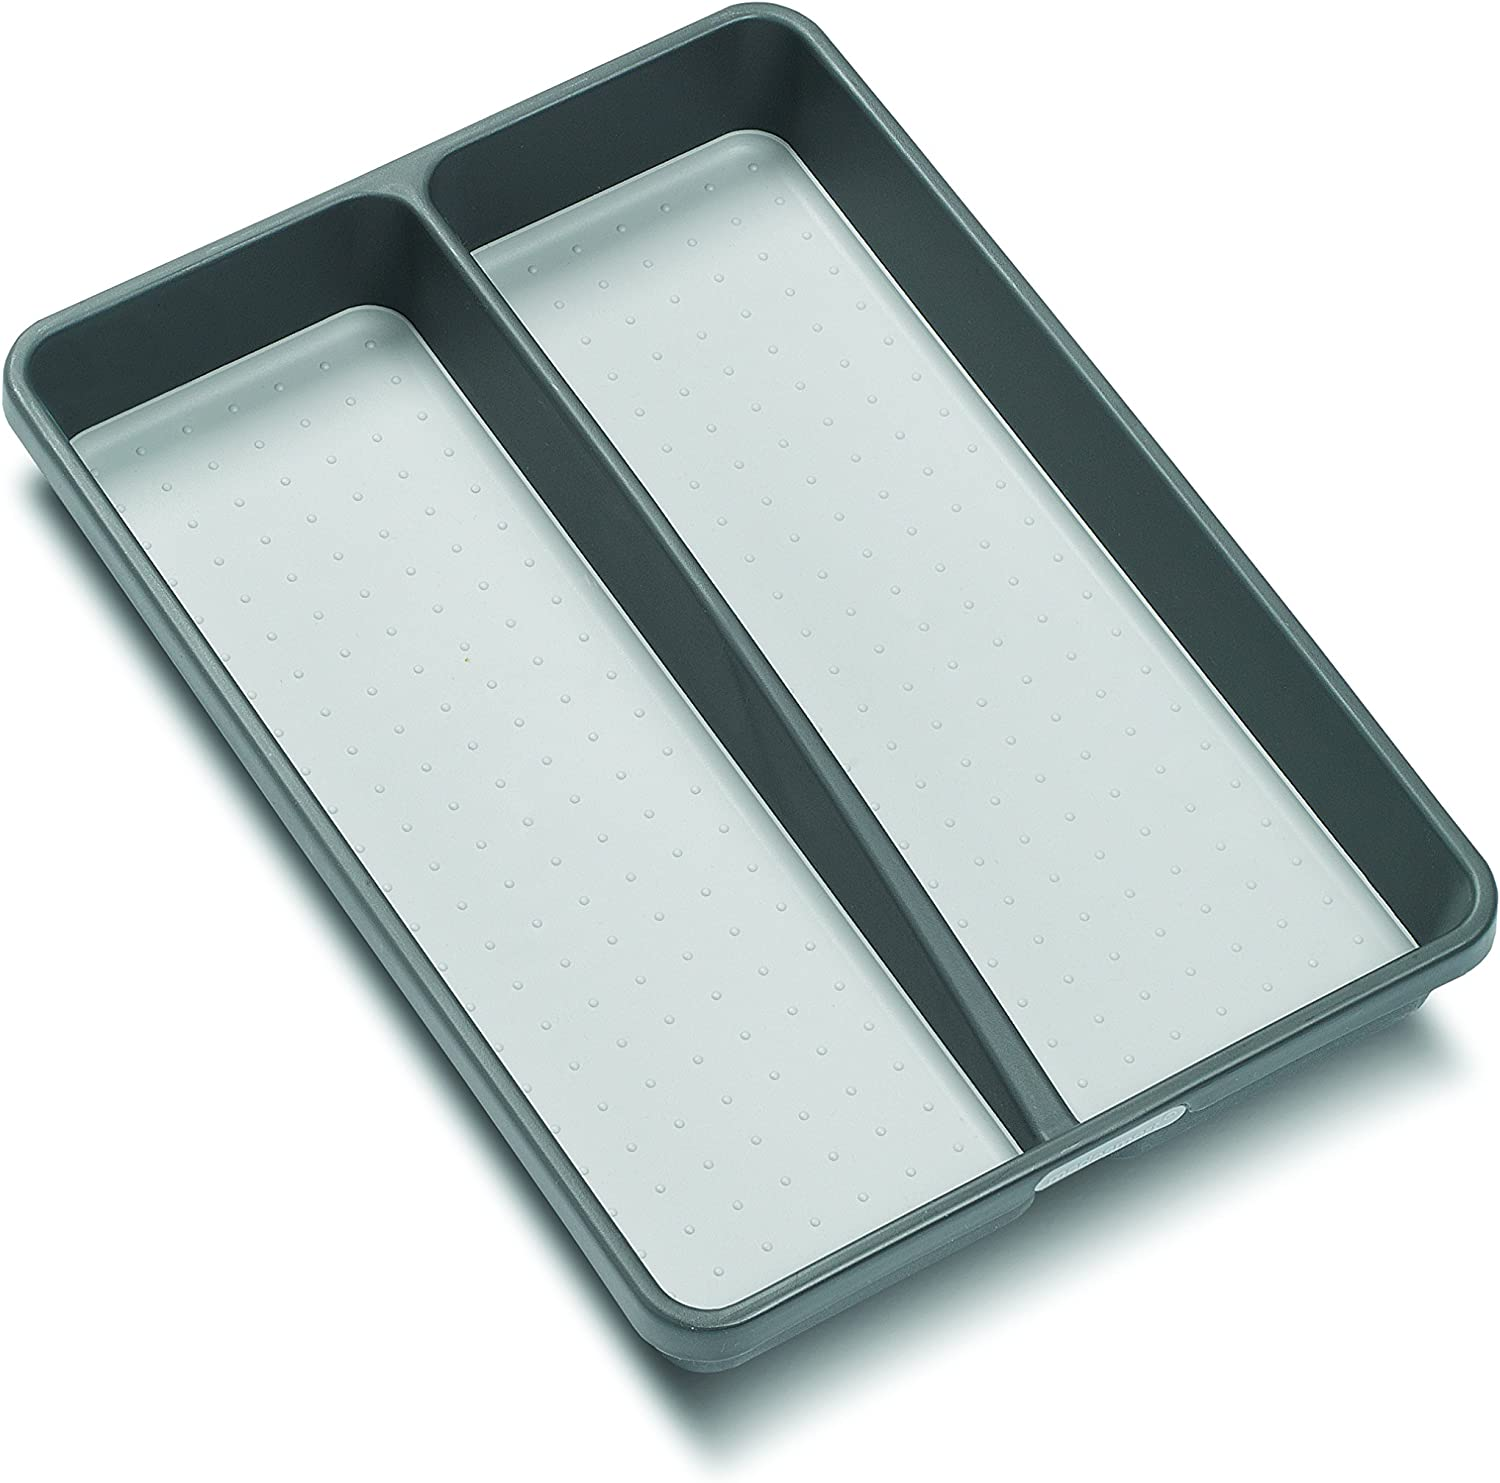 madesmart Classic Mini Utensil Tray - Granite | CLASSIC COLLECTION | 2-Compartments | Kitchen Organizer | Soft-grip Lining and Non-slip Rubber Feet | BPA-Free